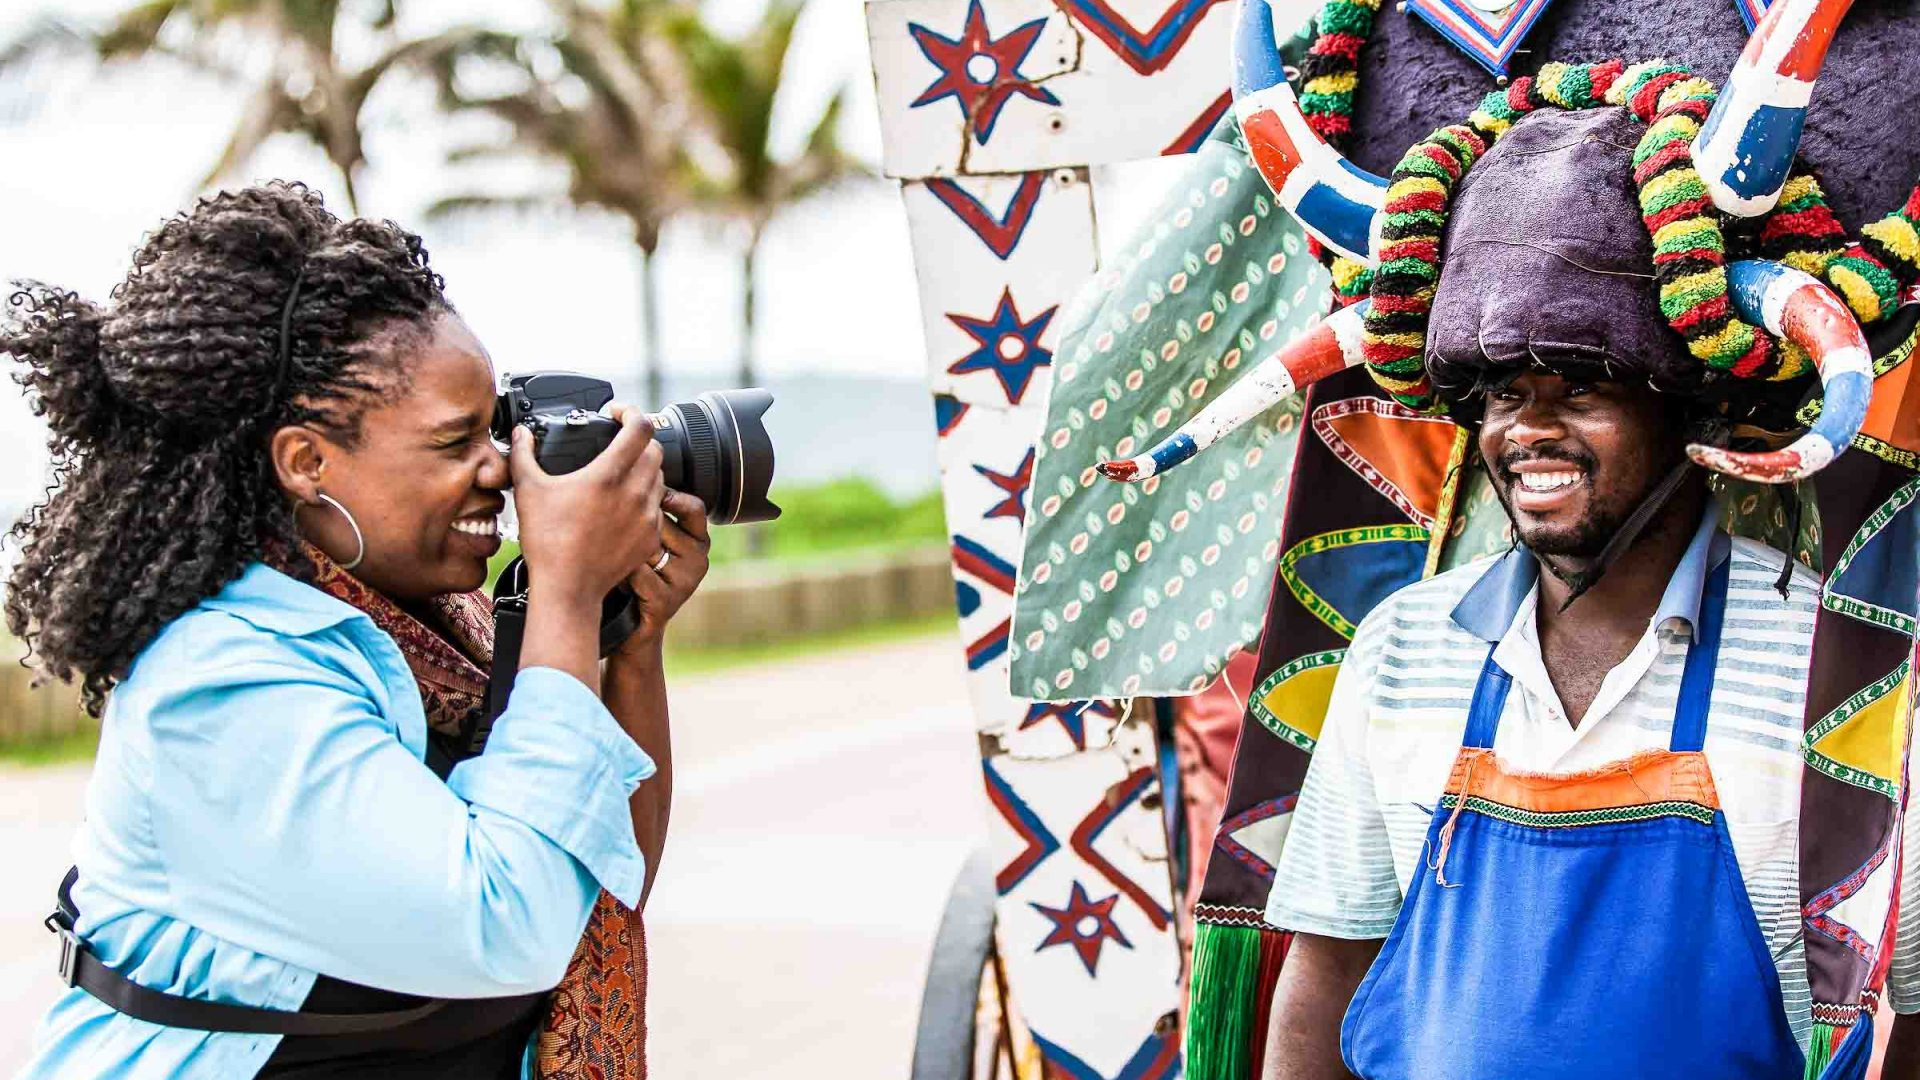 Lola Akinmade Åkerström on assignment in South Africa in partnership with National Geographic Channel.